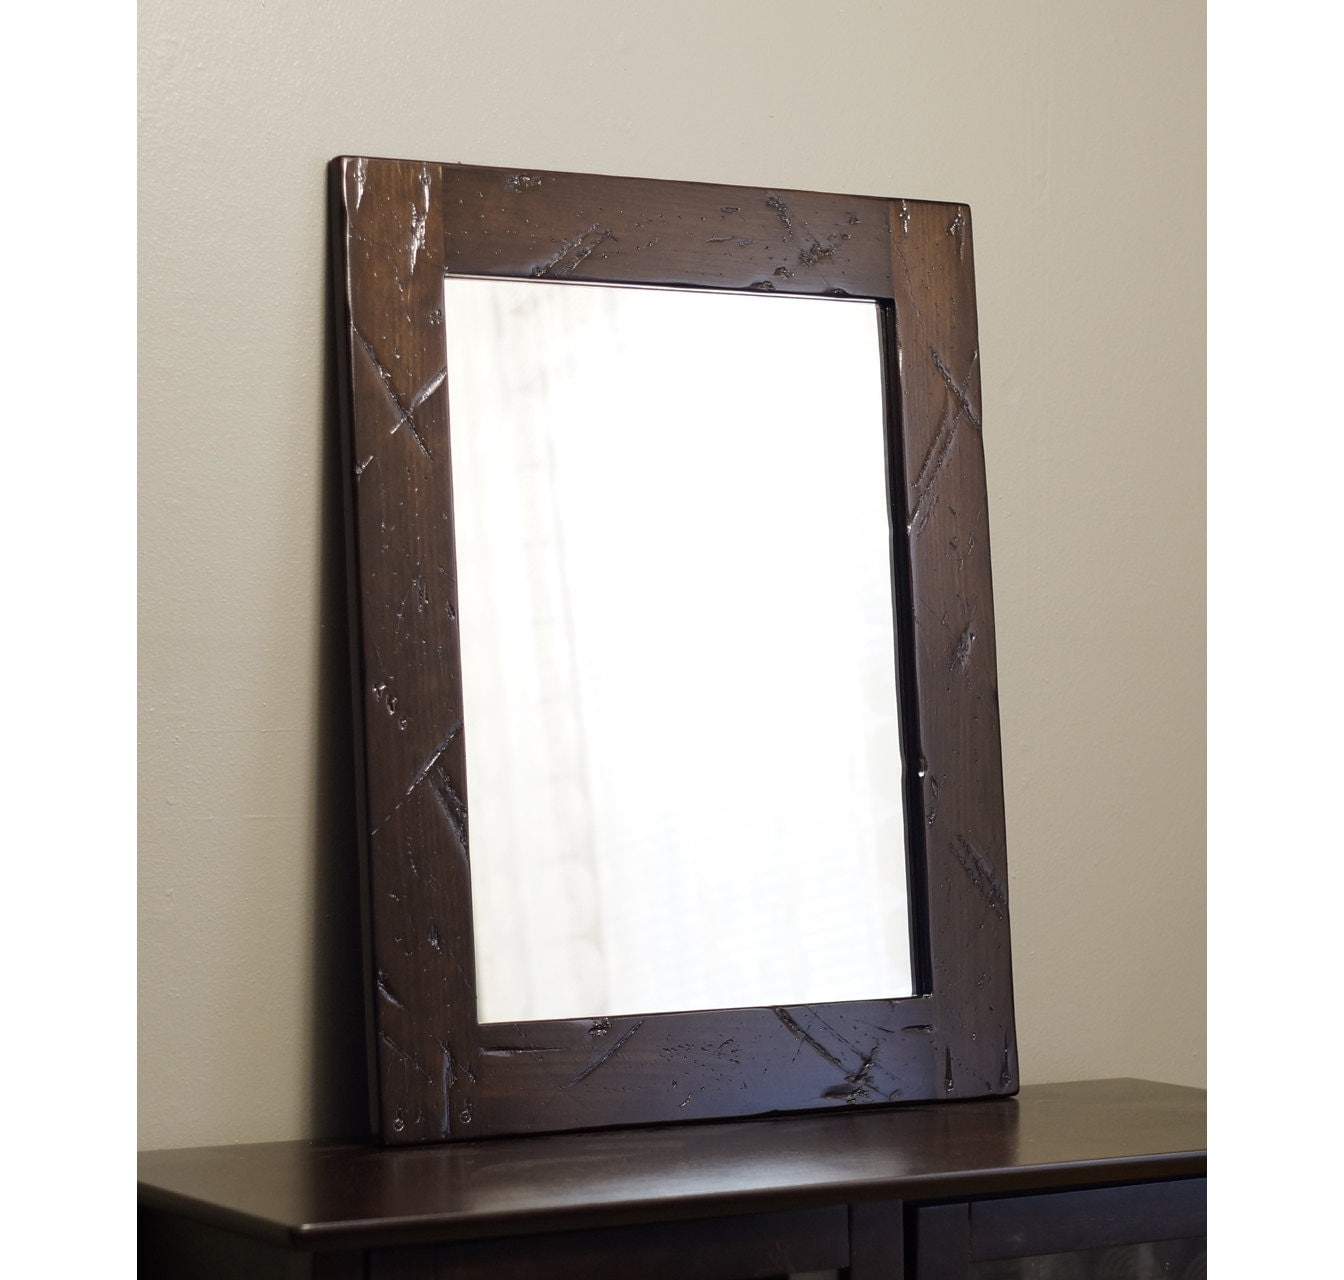 Distressed Wood Mirror Bathroom Dark Brown Rustic by KennethDante